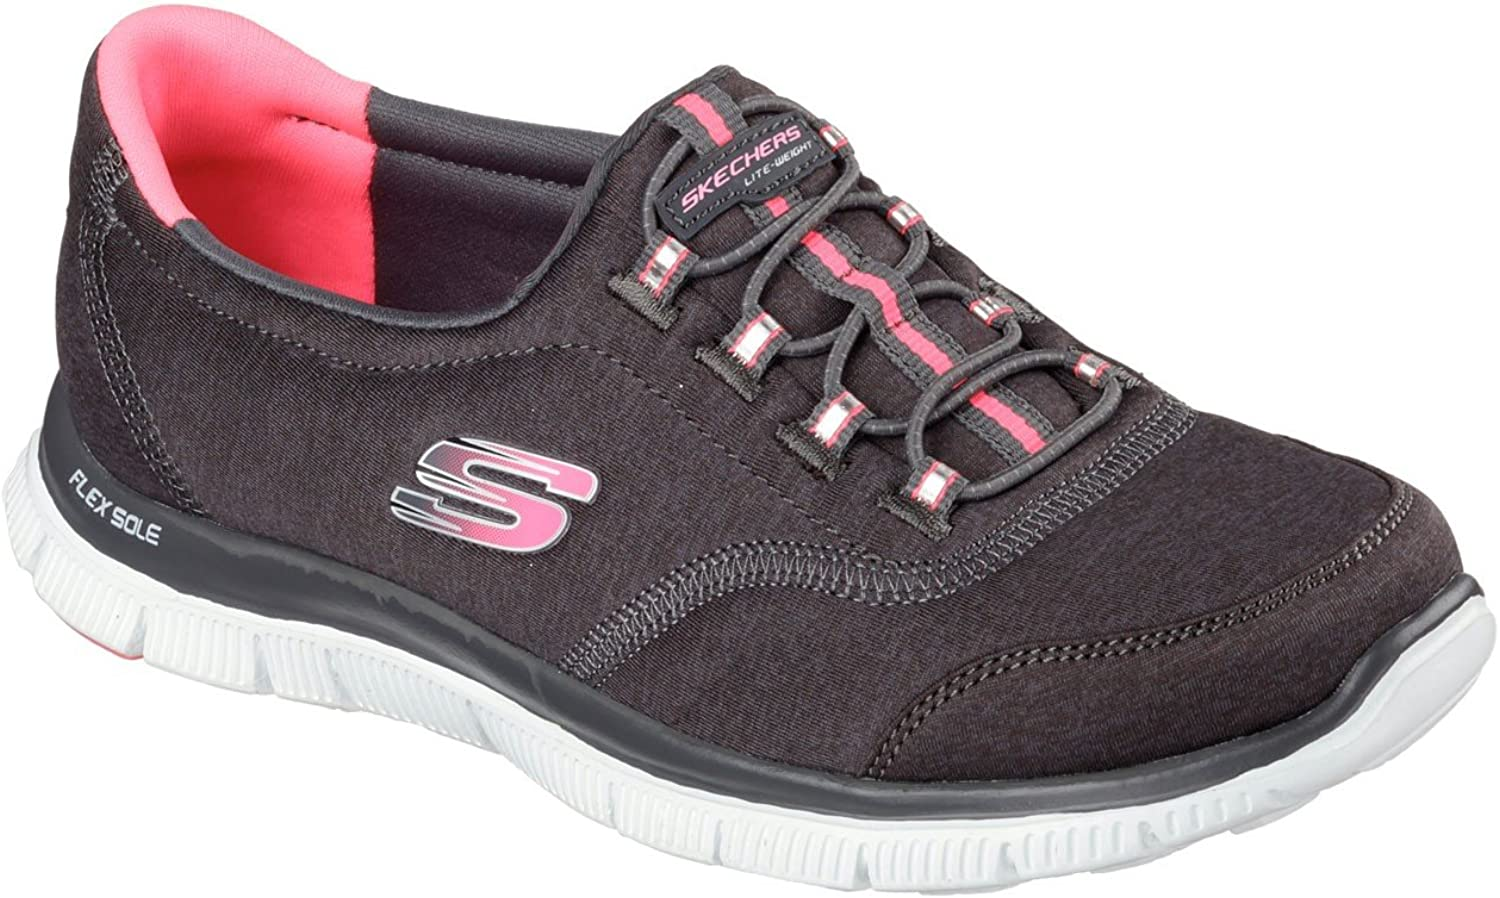 Skechers Flex Appeal Record Breaker Womens Sneakers Black